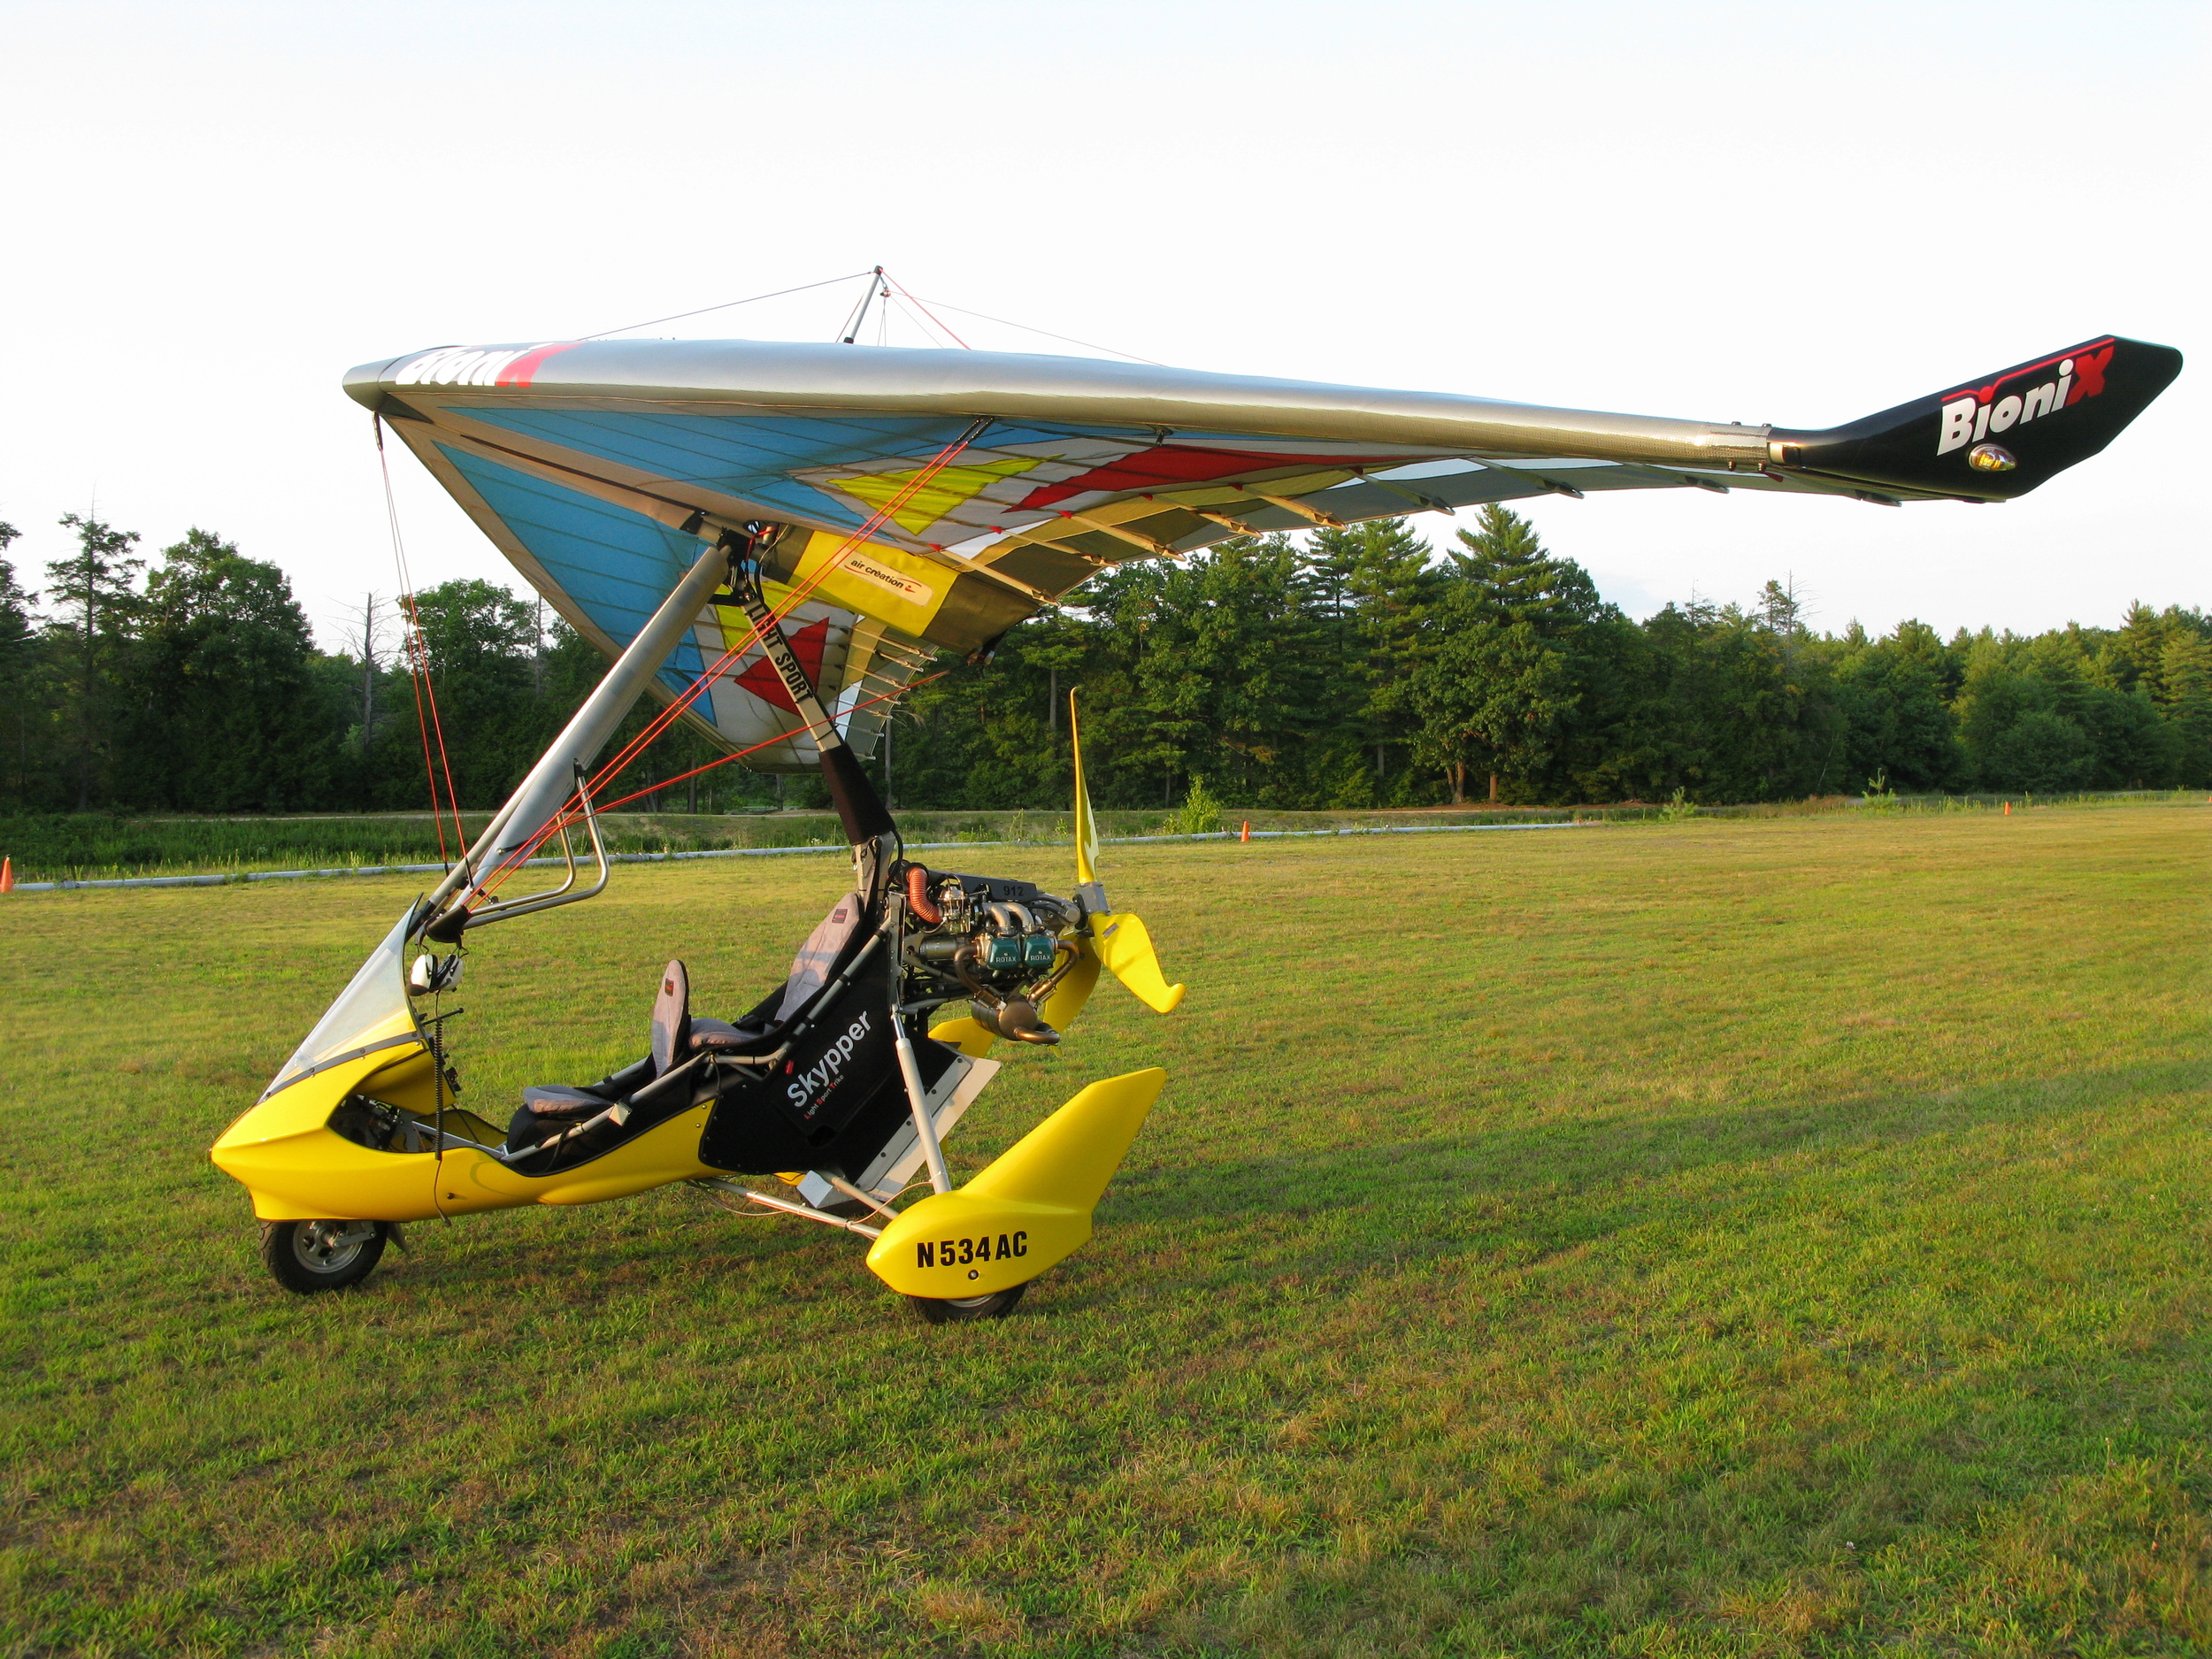 Now flying our new trainer an Air Creation Skypper